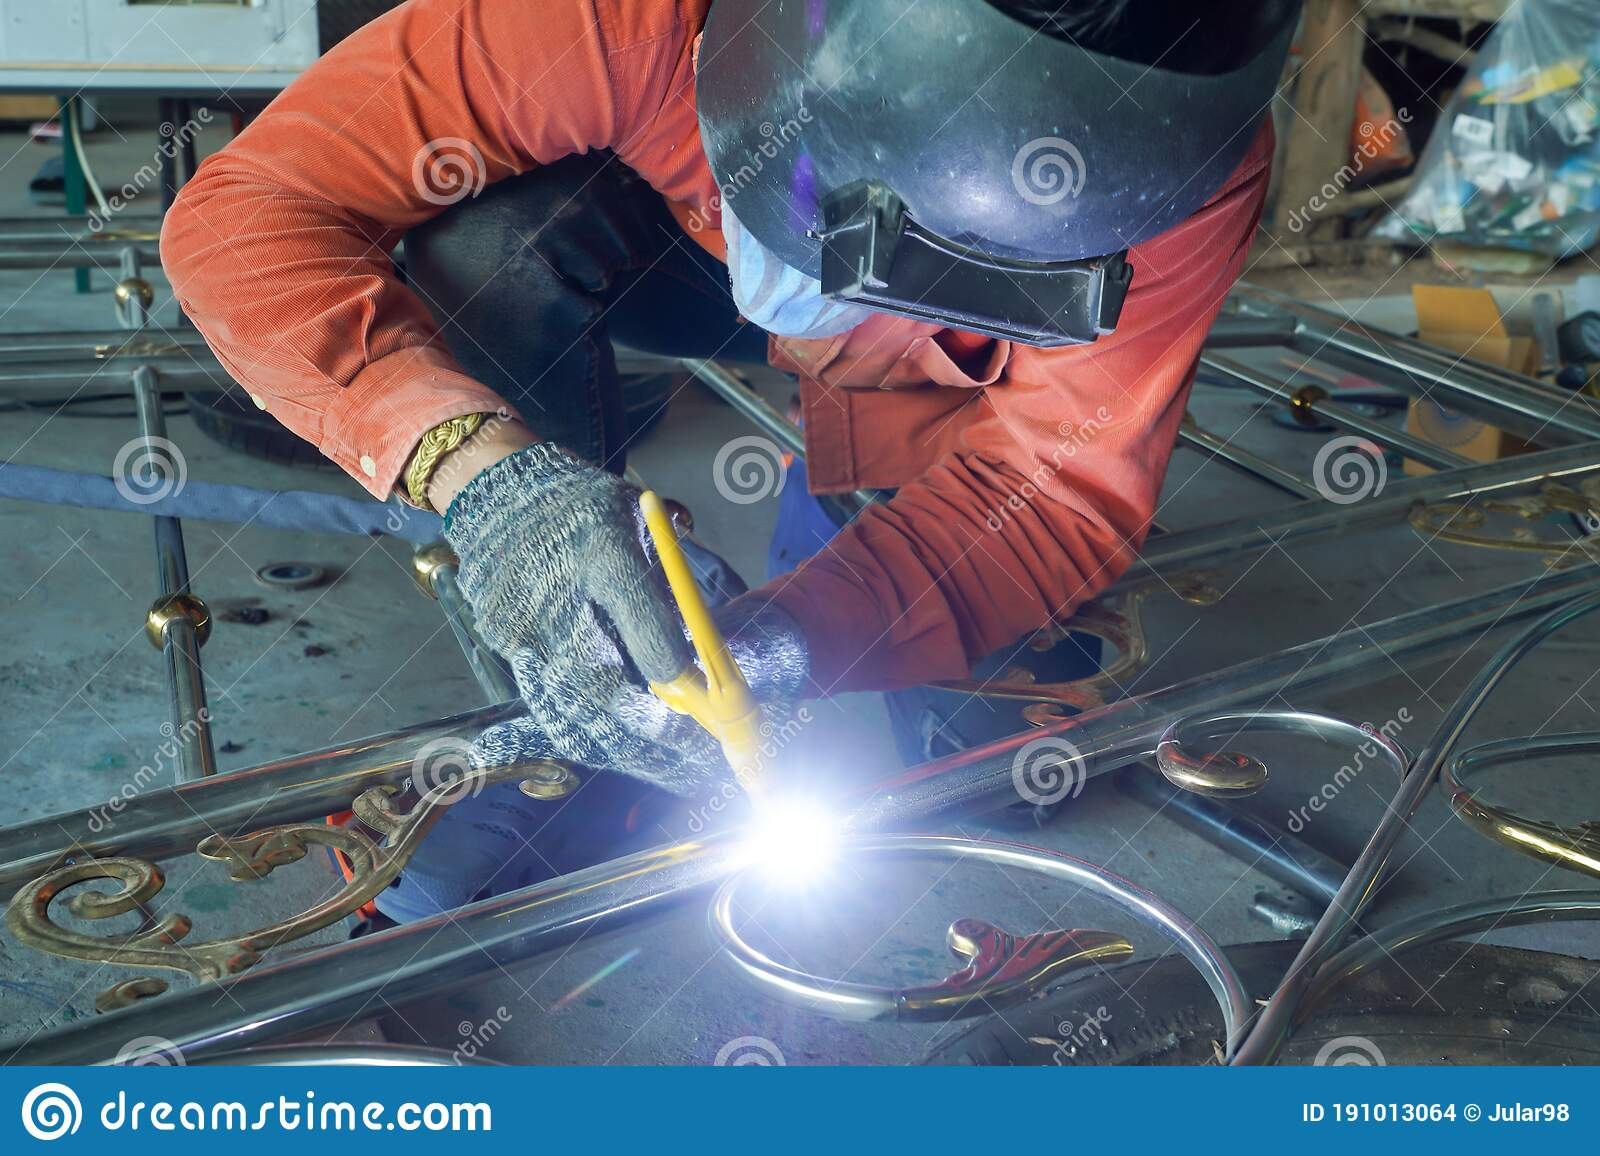 Welders Are Welding The Various Parts Stock Photo Image Of Flash Mask 191013064